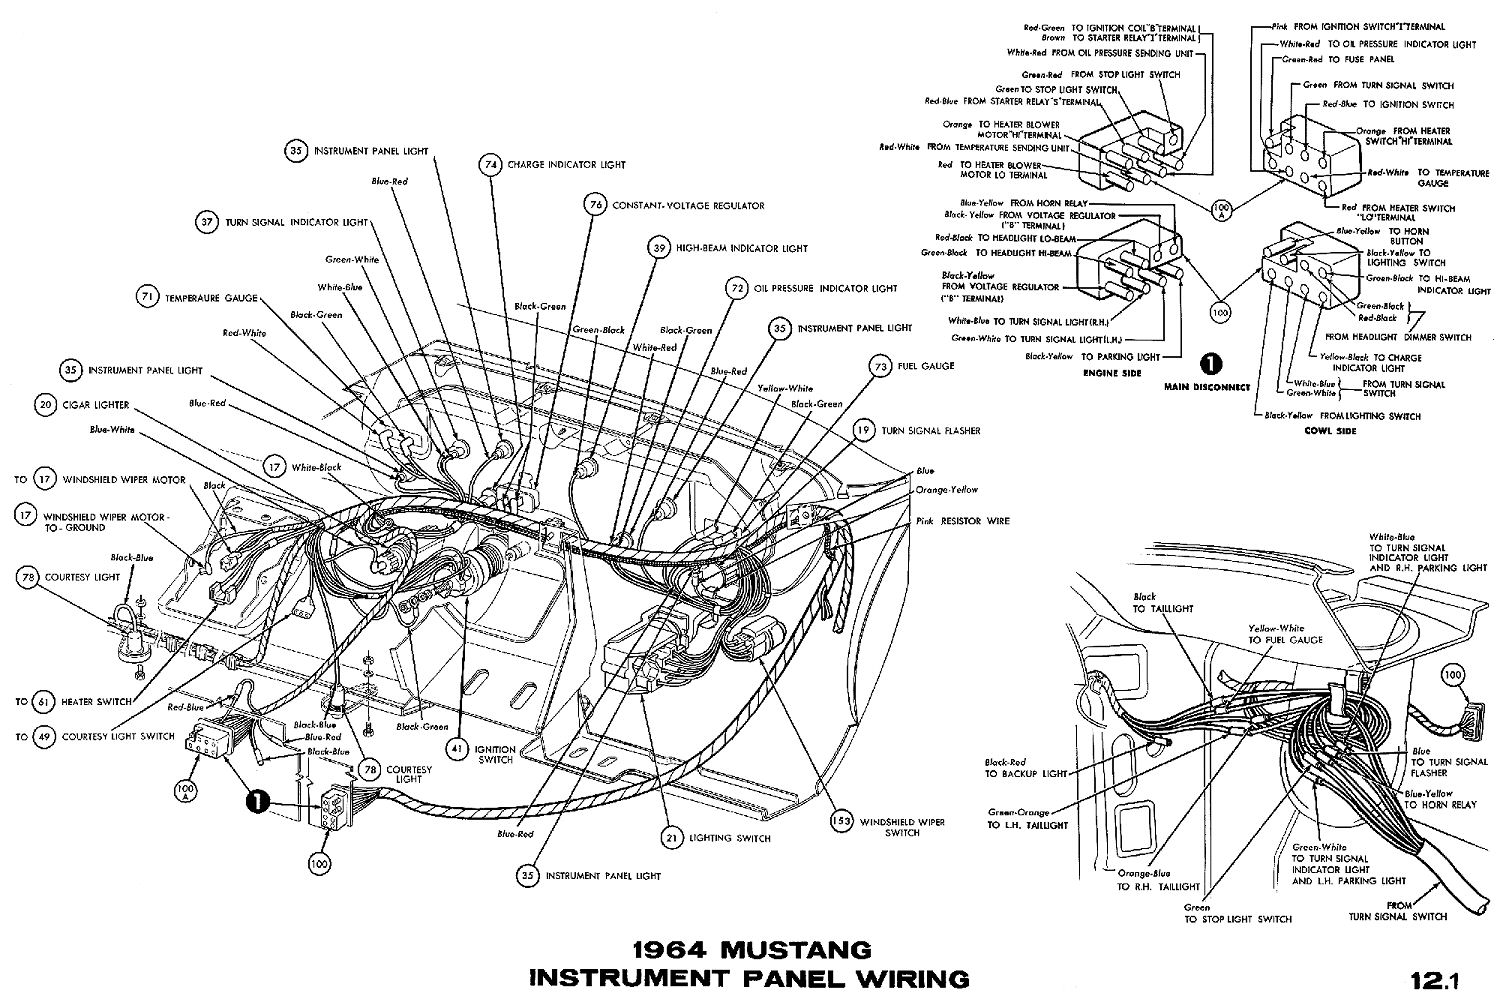 1964b 1964 mustang wiring diagrams average joe restoration 1965 mustang under dash wiring diagram at love-stories.co